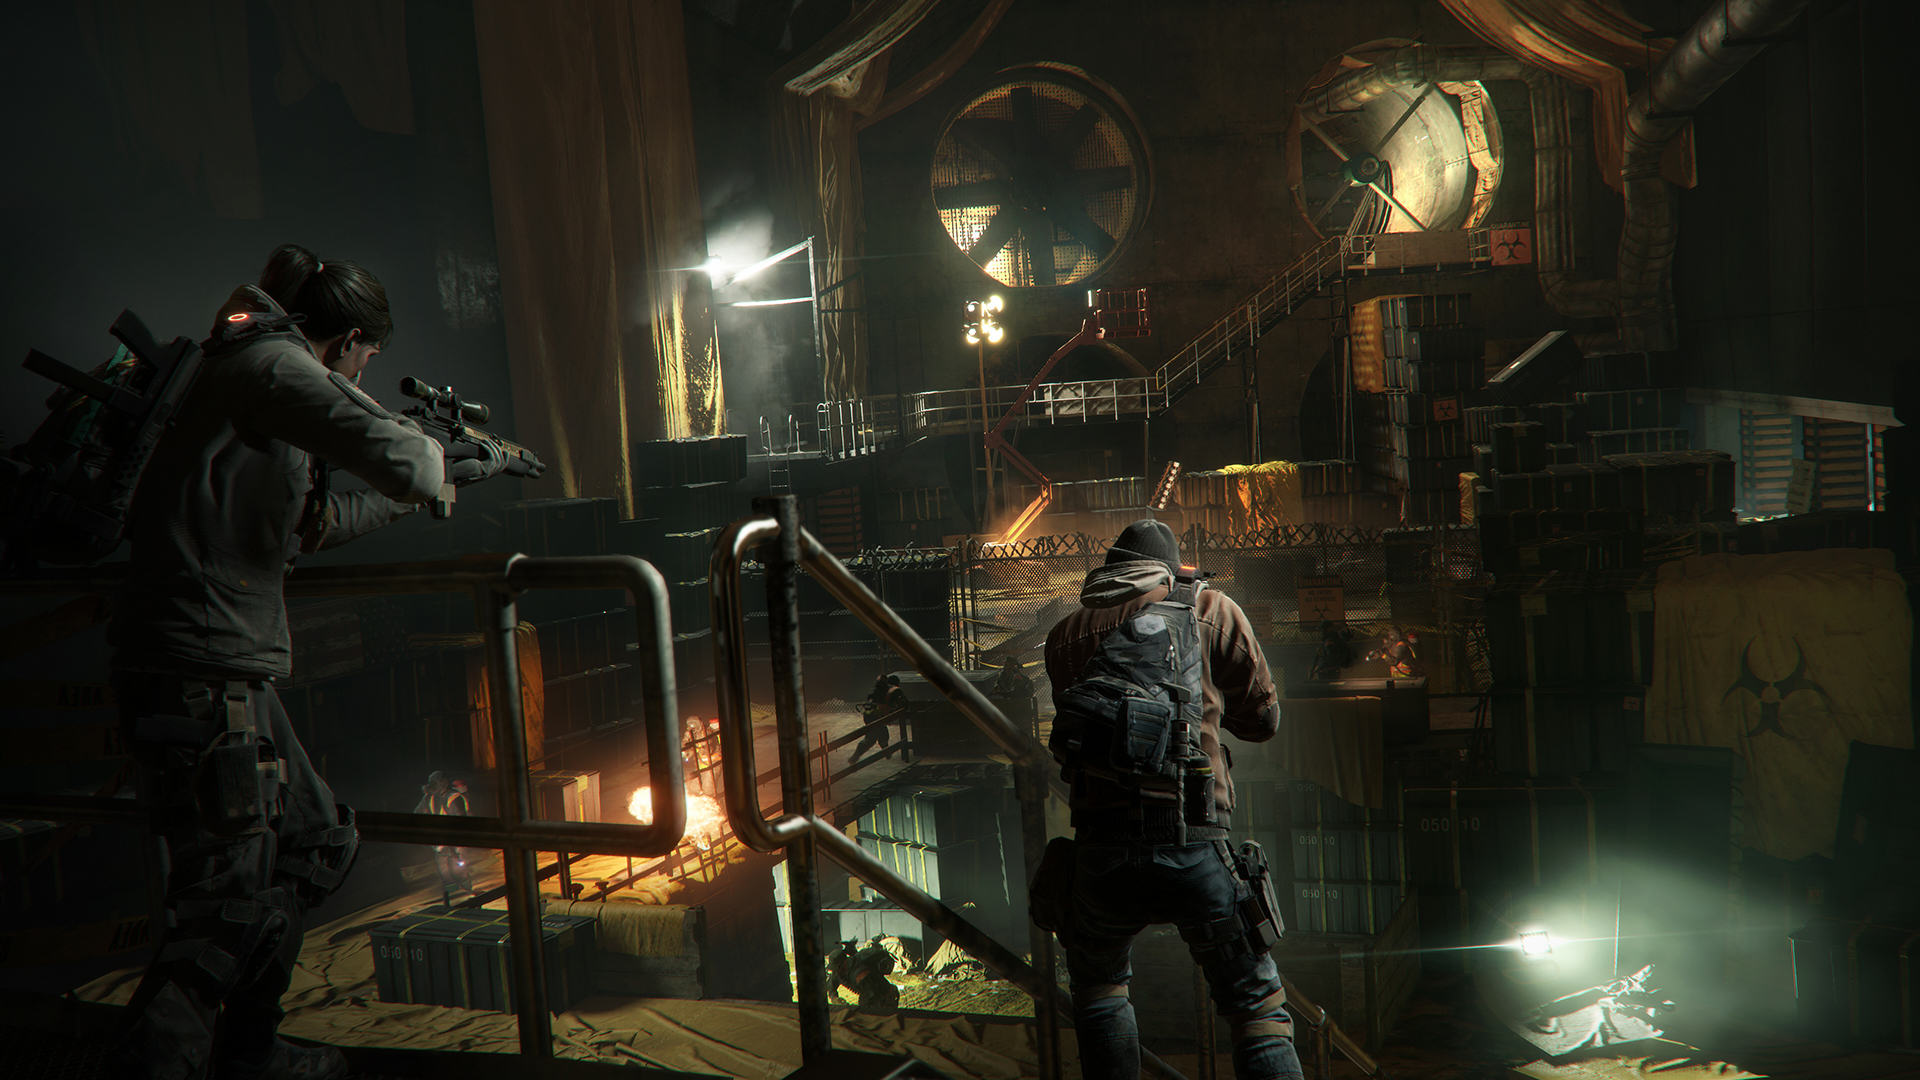 The Division New Mission Teased In Trailer For The Division Open Beta